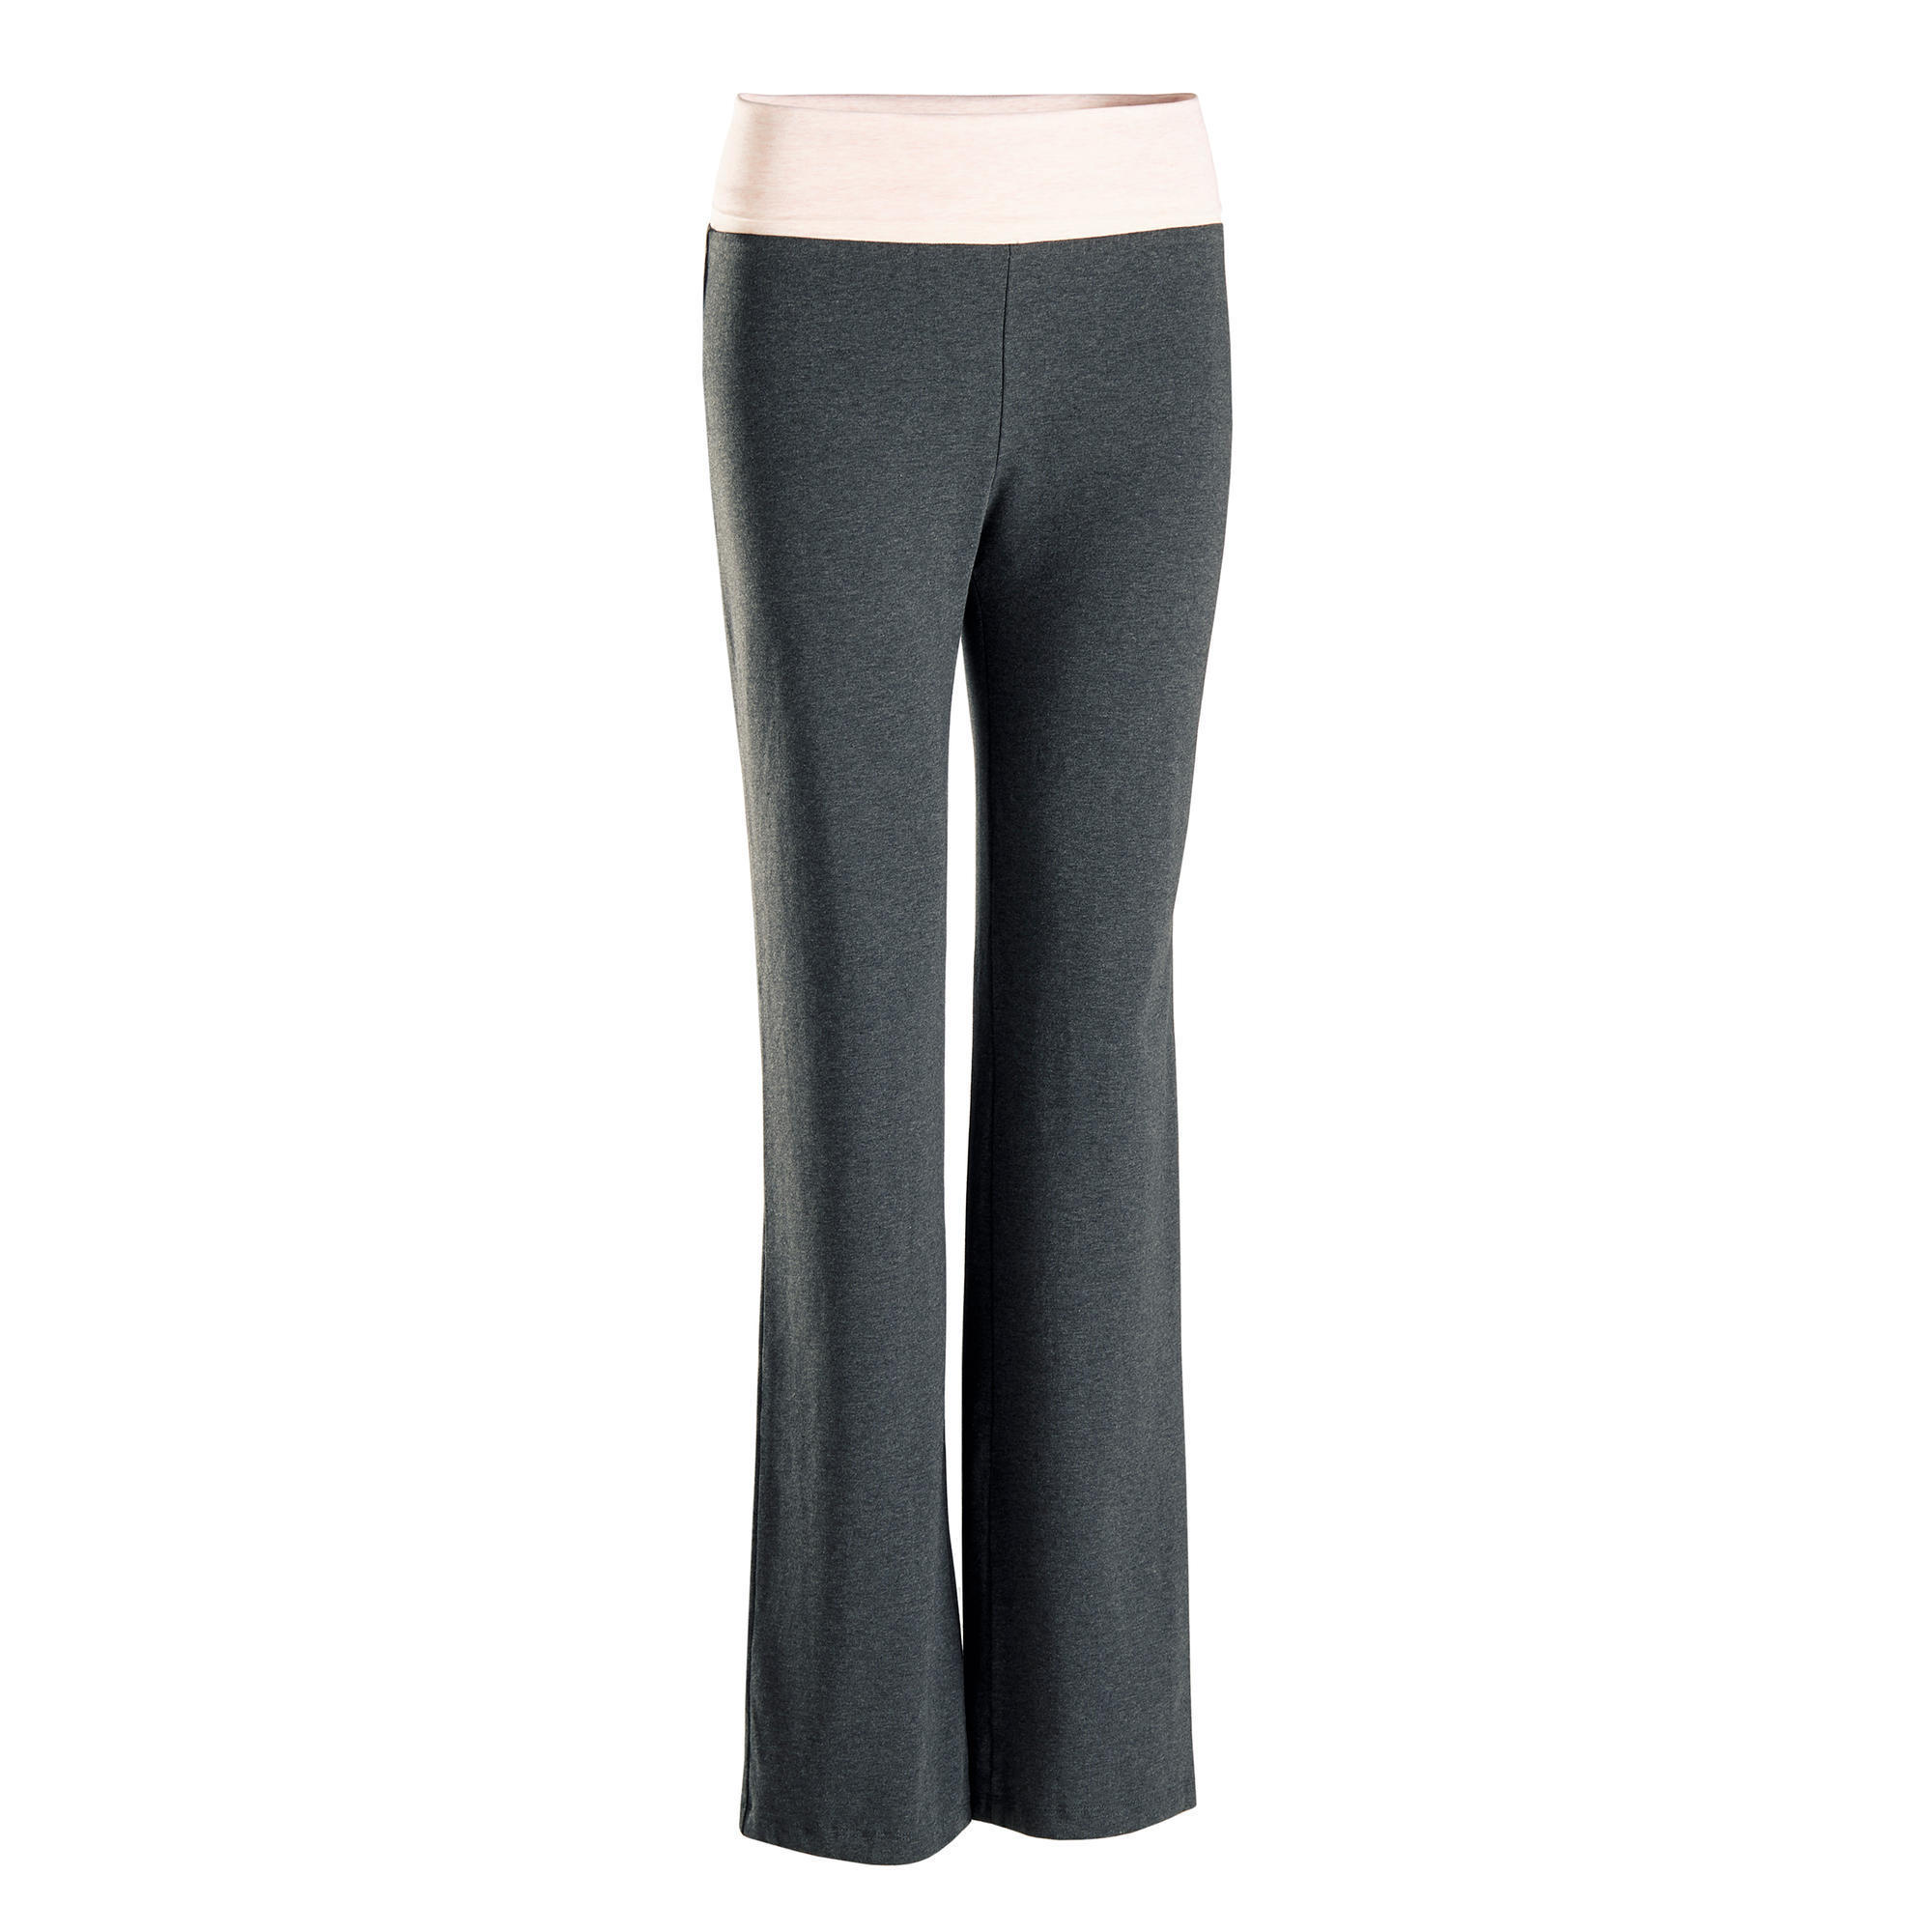 Pantalon De Yoga Decathlon